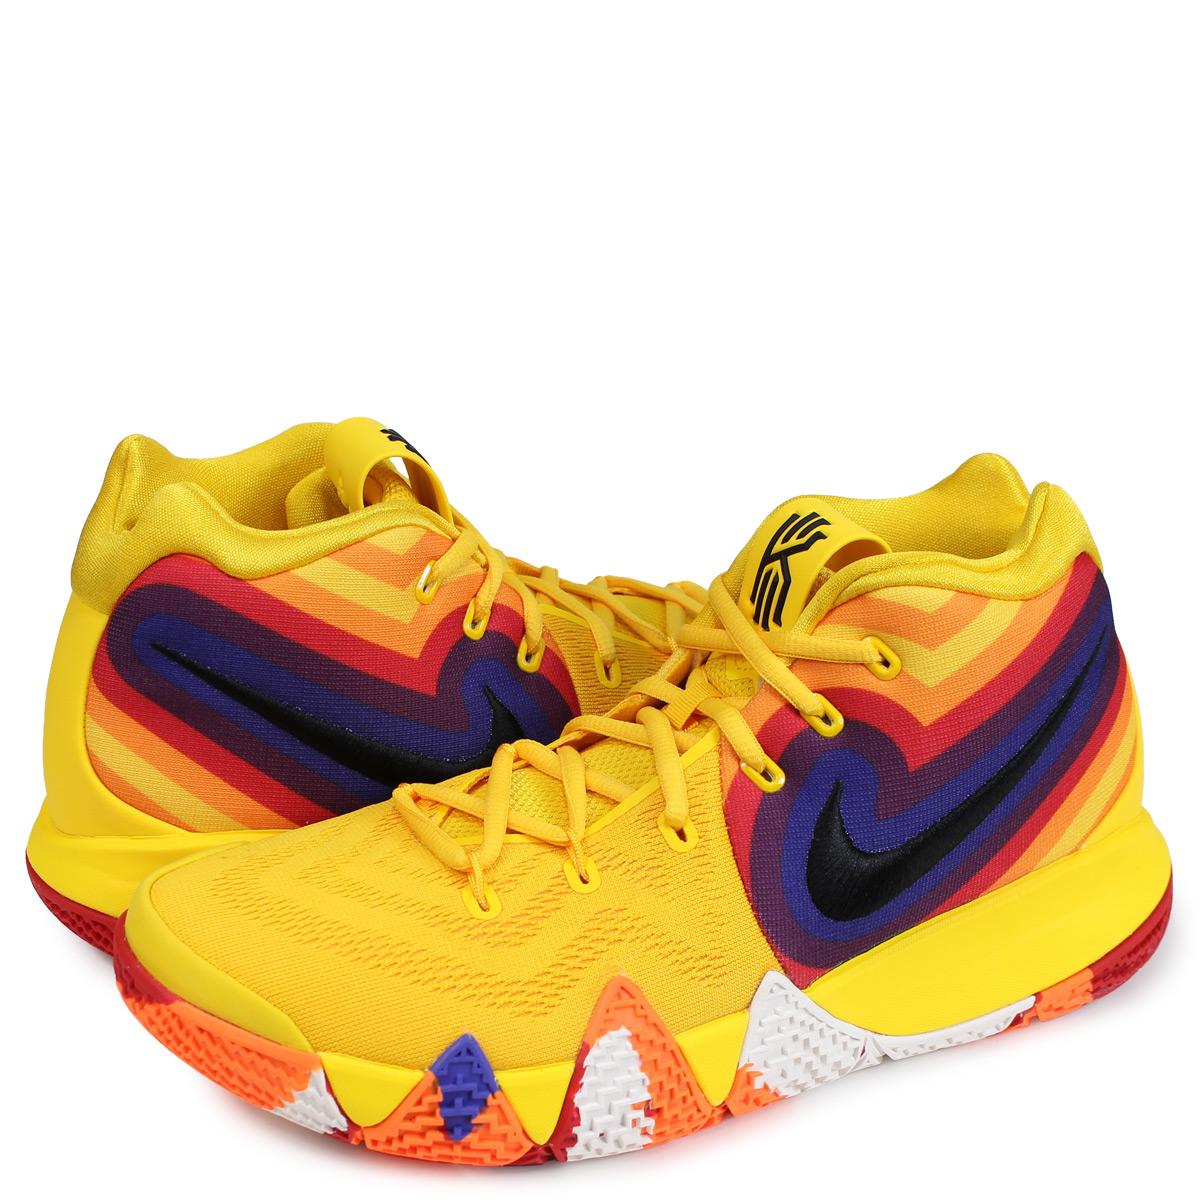 f6c6d0bf2704 Nike NIKE chi Lee 4 sneakers men KYRIE 4 EP 70s DECADES PACK yellow  943